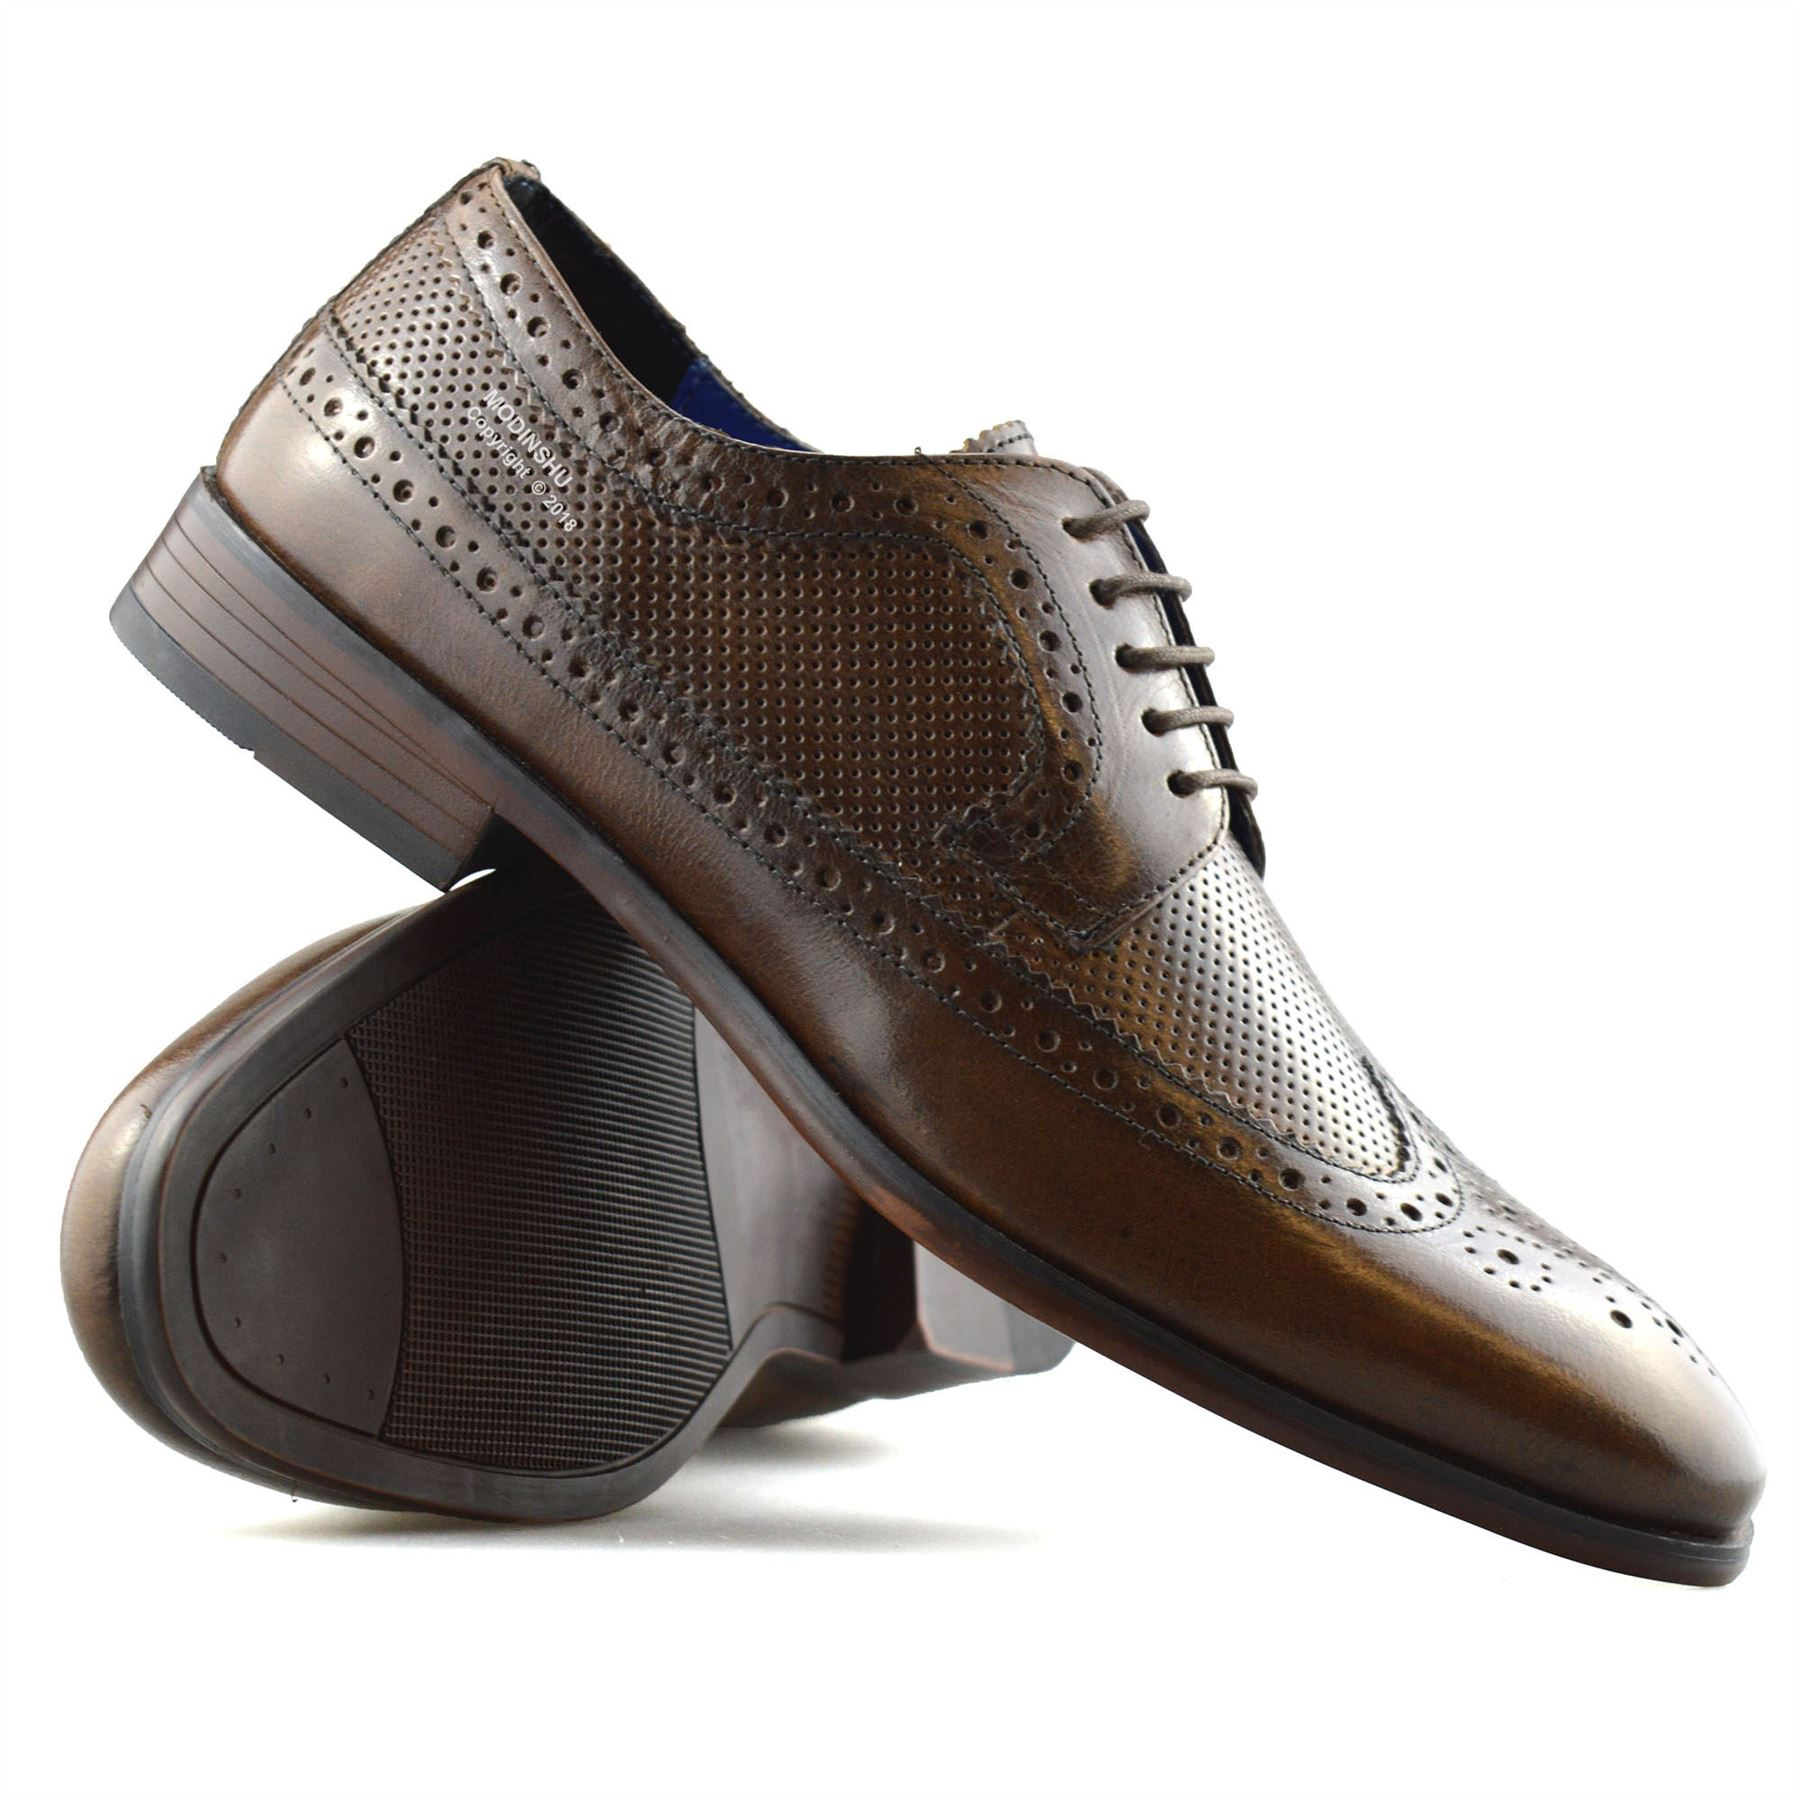 Mens-Leather-Brogues-Smart-Casual-Formal-Office-Lace-Up-Oxford-Brogue-Shoes-Size thumbnail 24